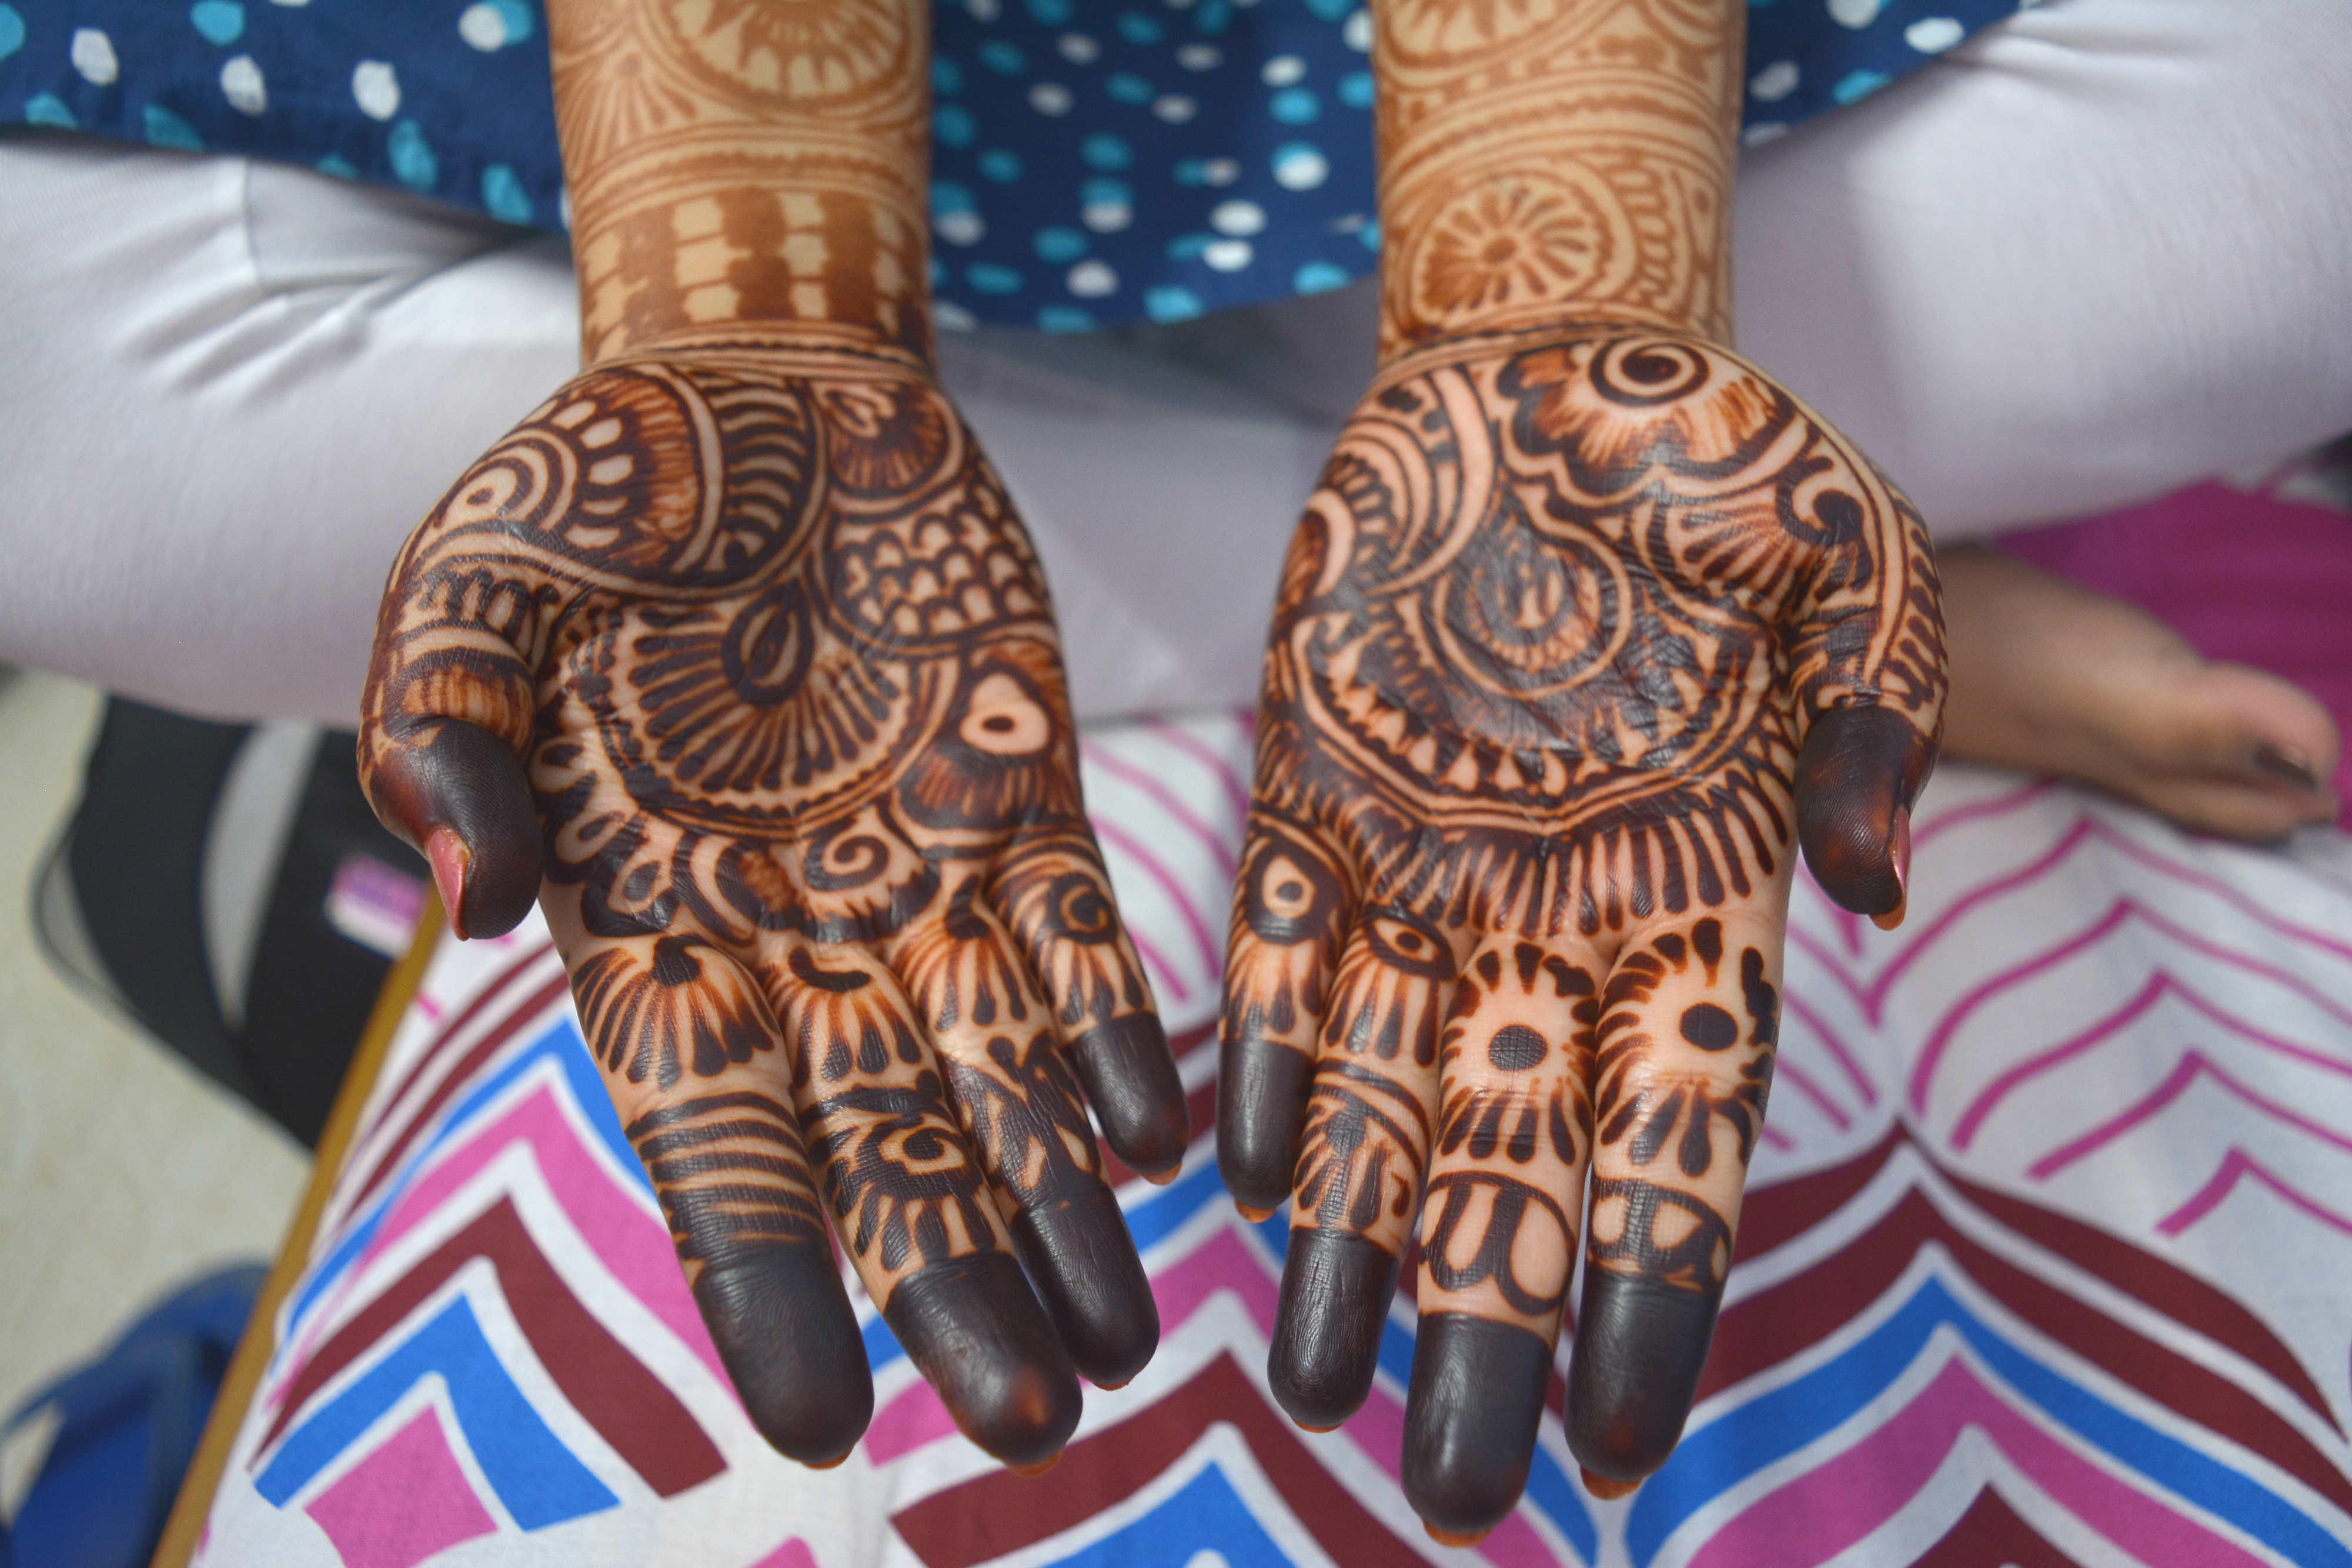 Mehndi Henna Red Cone Infection : Fda warns about hidden dangers of temporary henna tattoos that